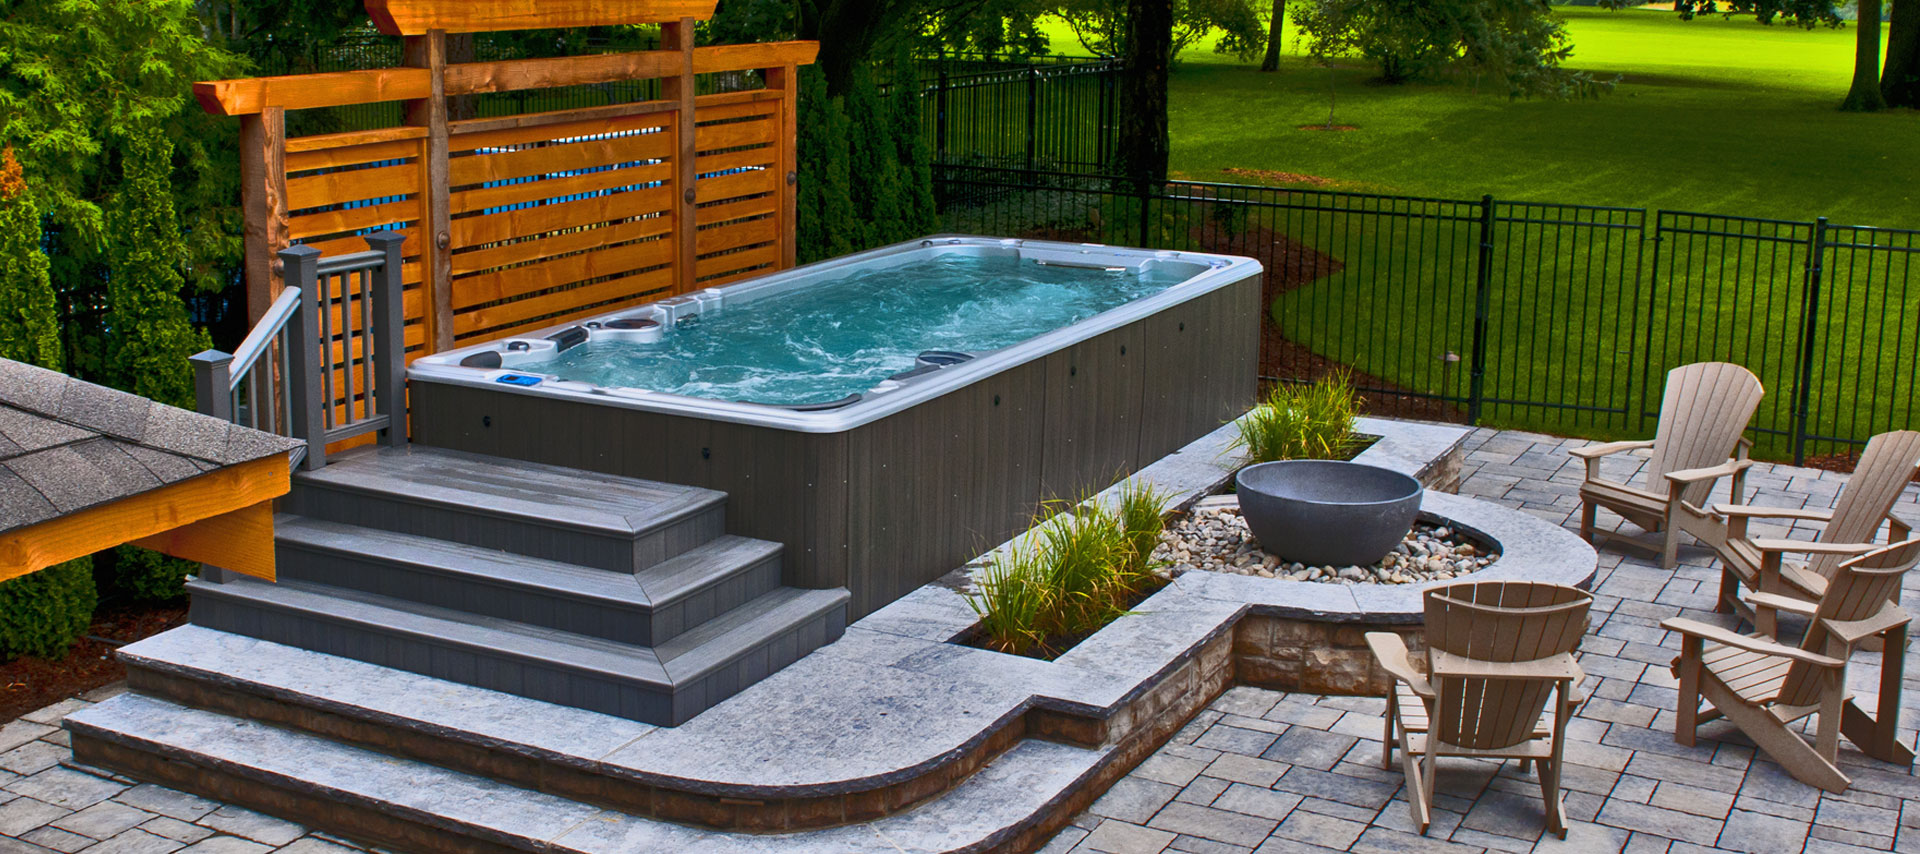 Hot Tub or Spa to create a paradise - quinju.com